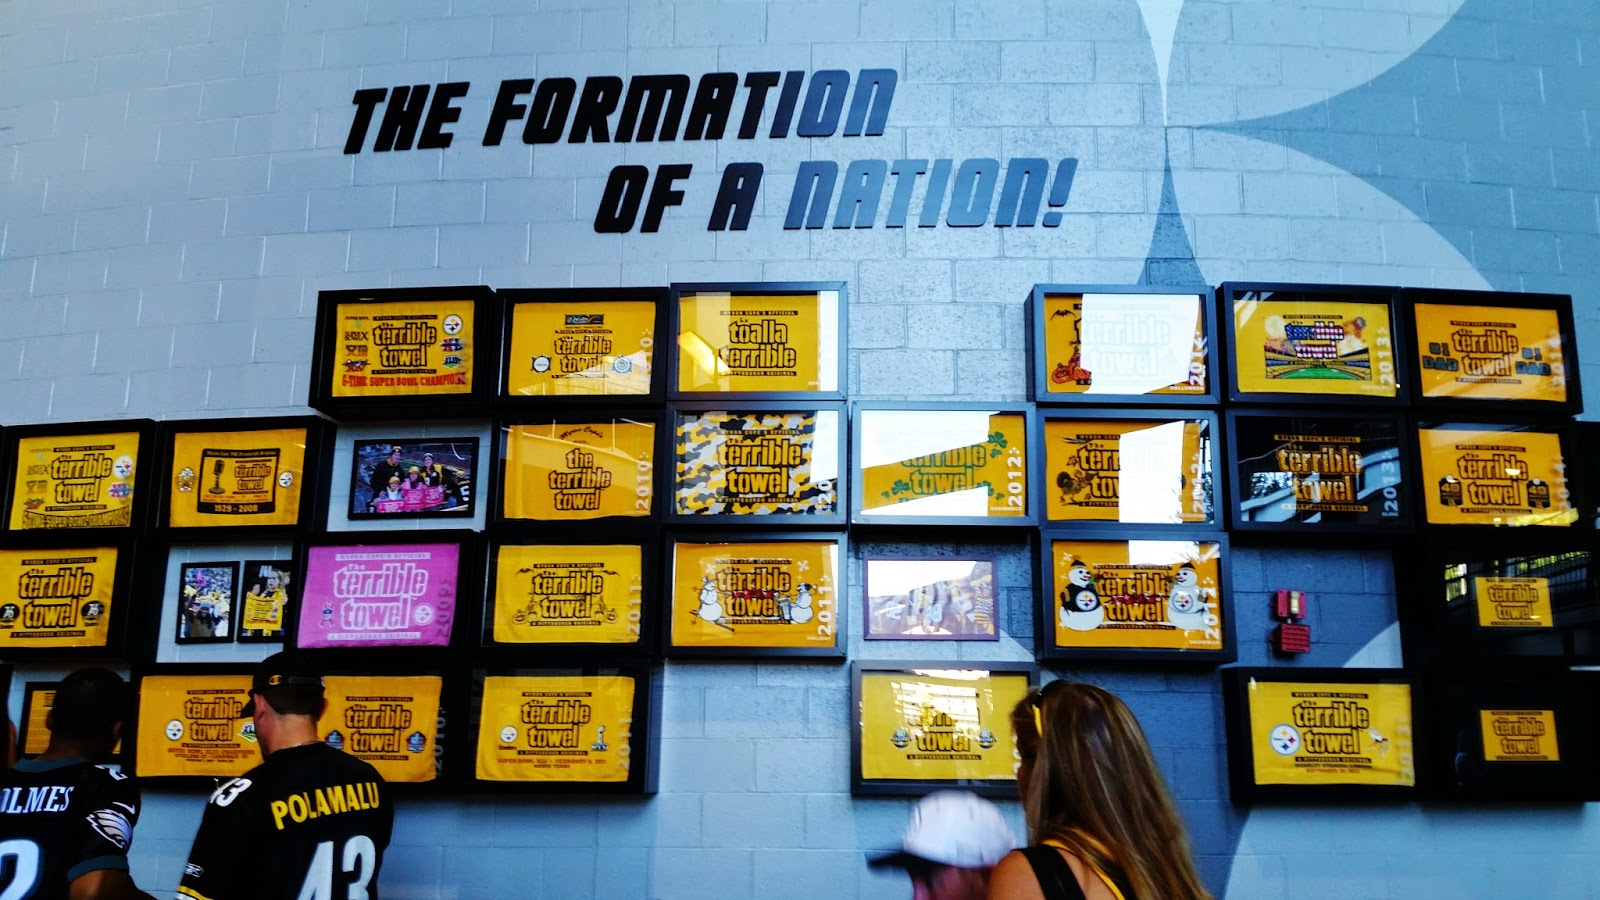 The wall of Terrible Towels Heinz Field